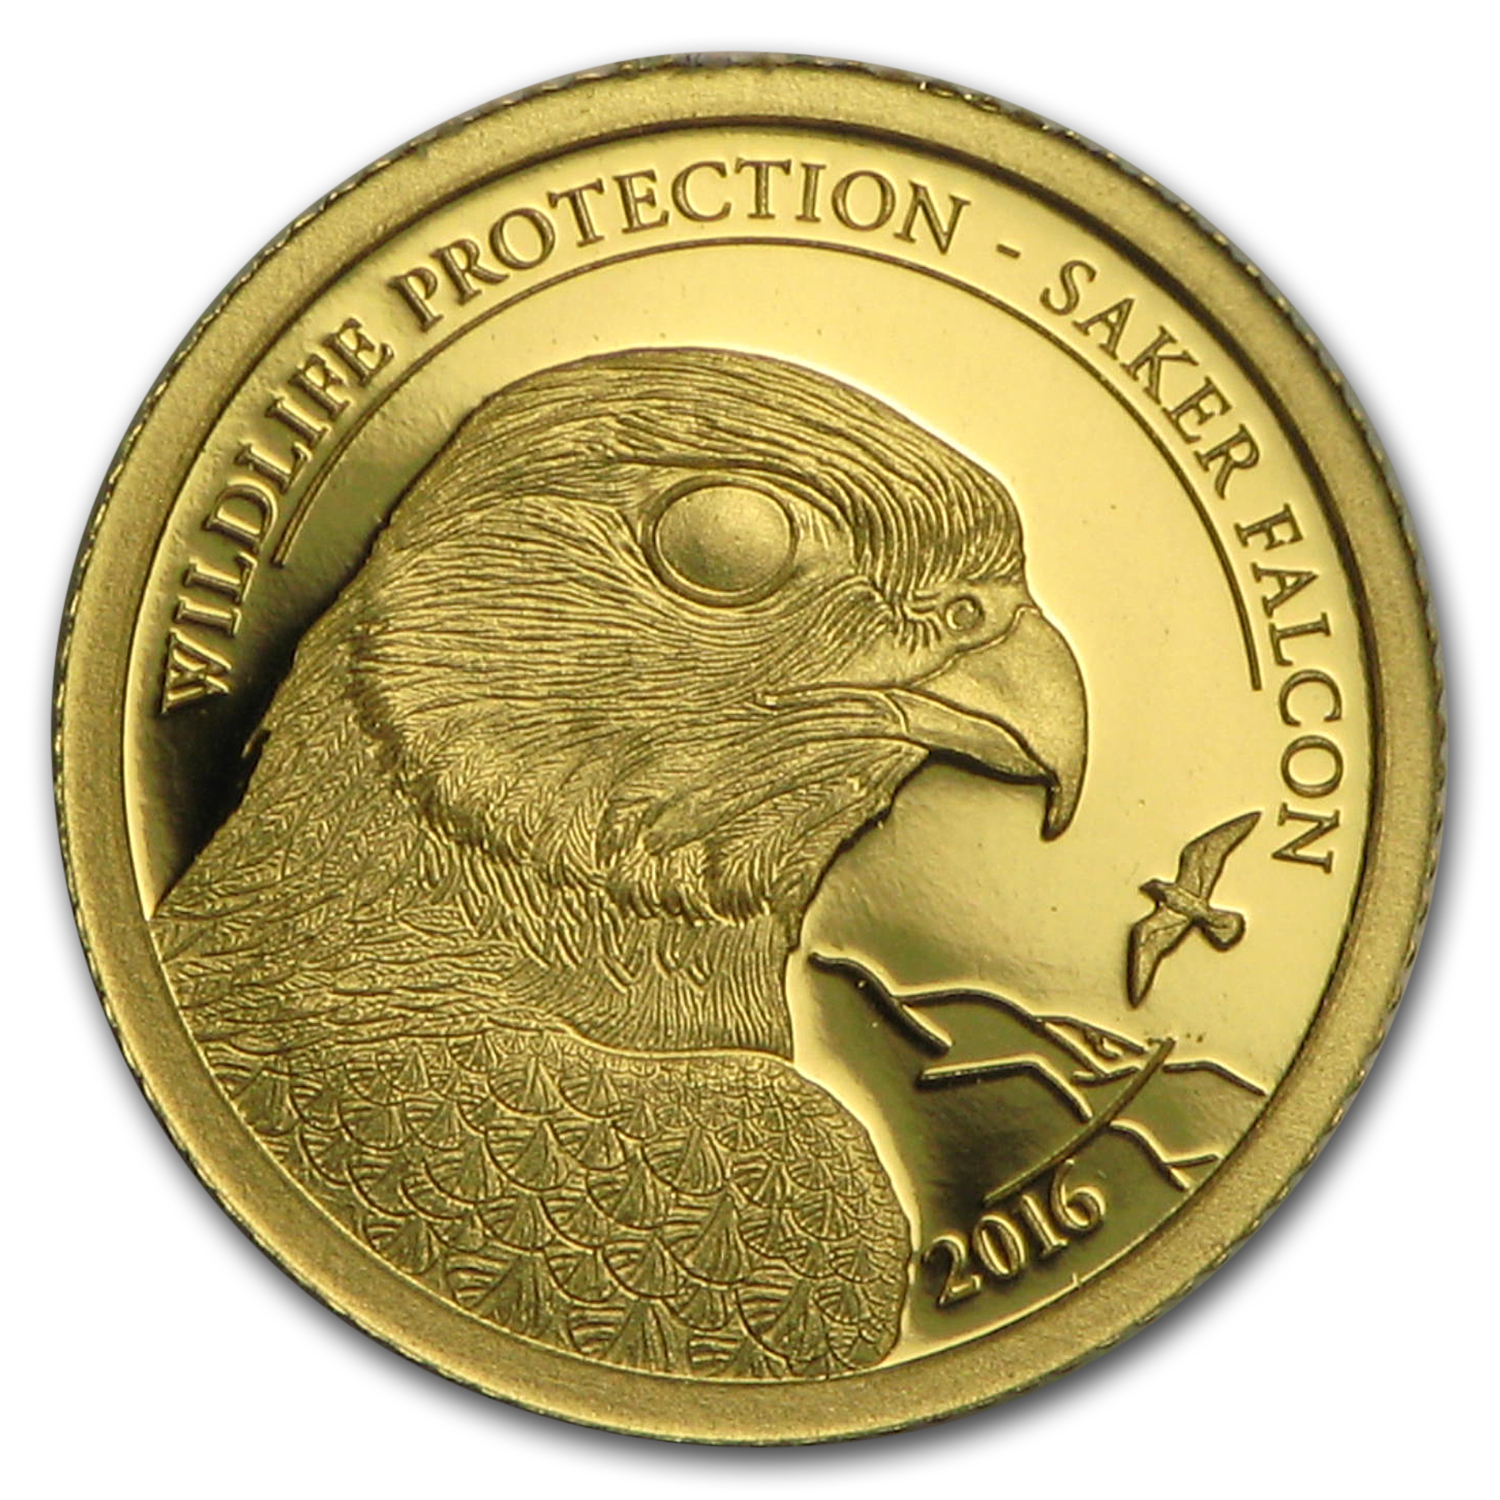 2016 Mongolia 1 2 Gram Proof Gold Wildlife Saker Falcon